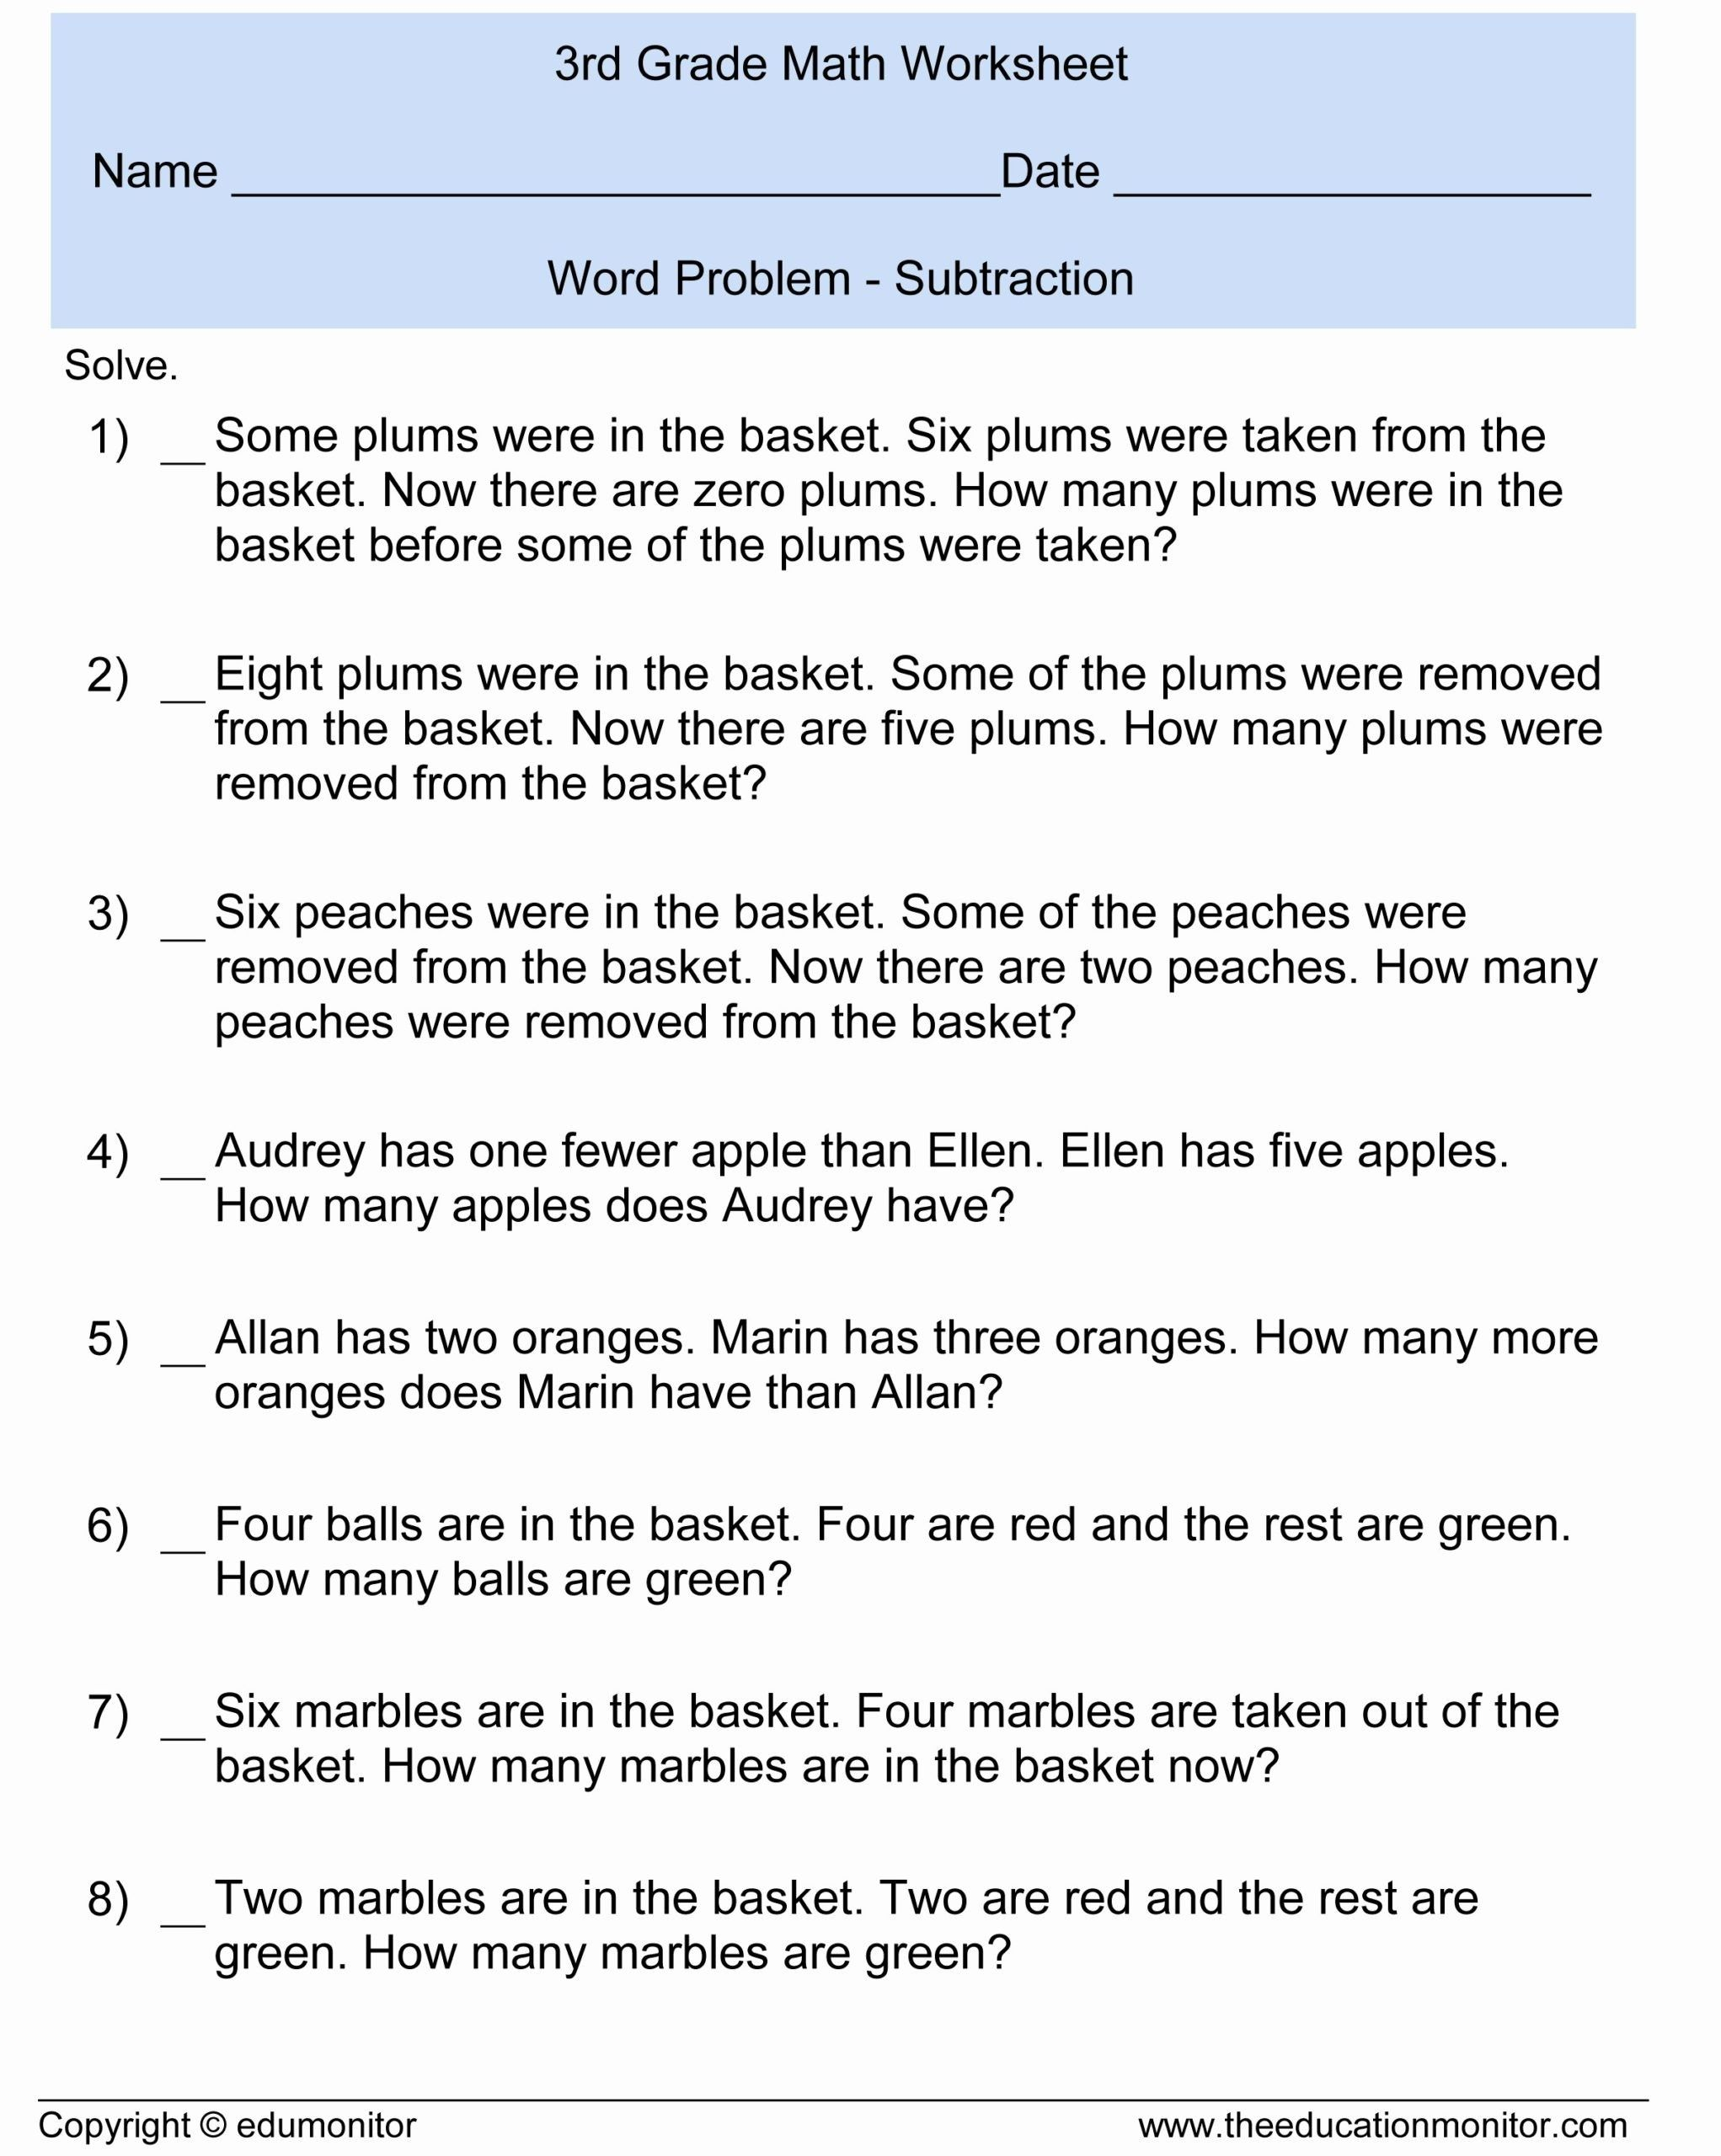 9 Readable 2nd Grade Math Worksheets Word Problems 2nd